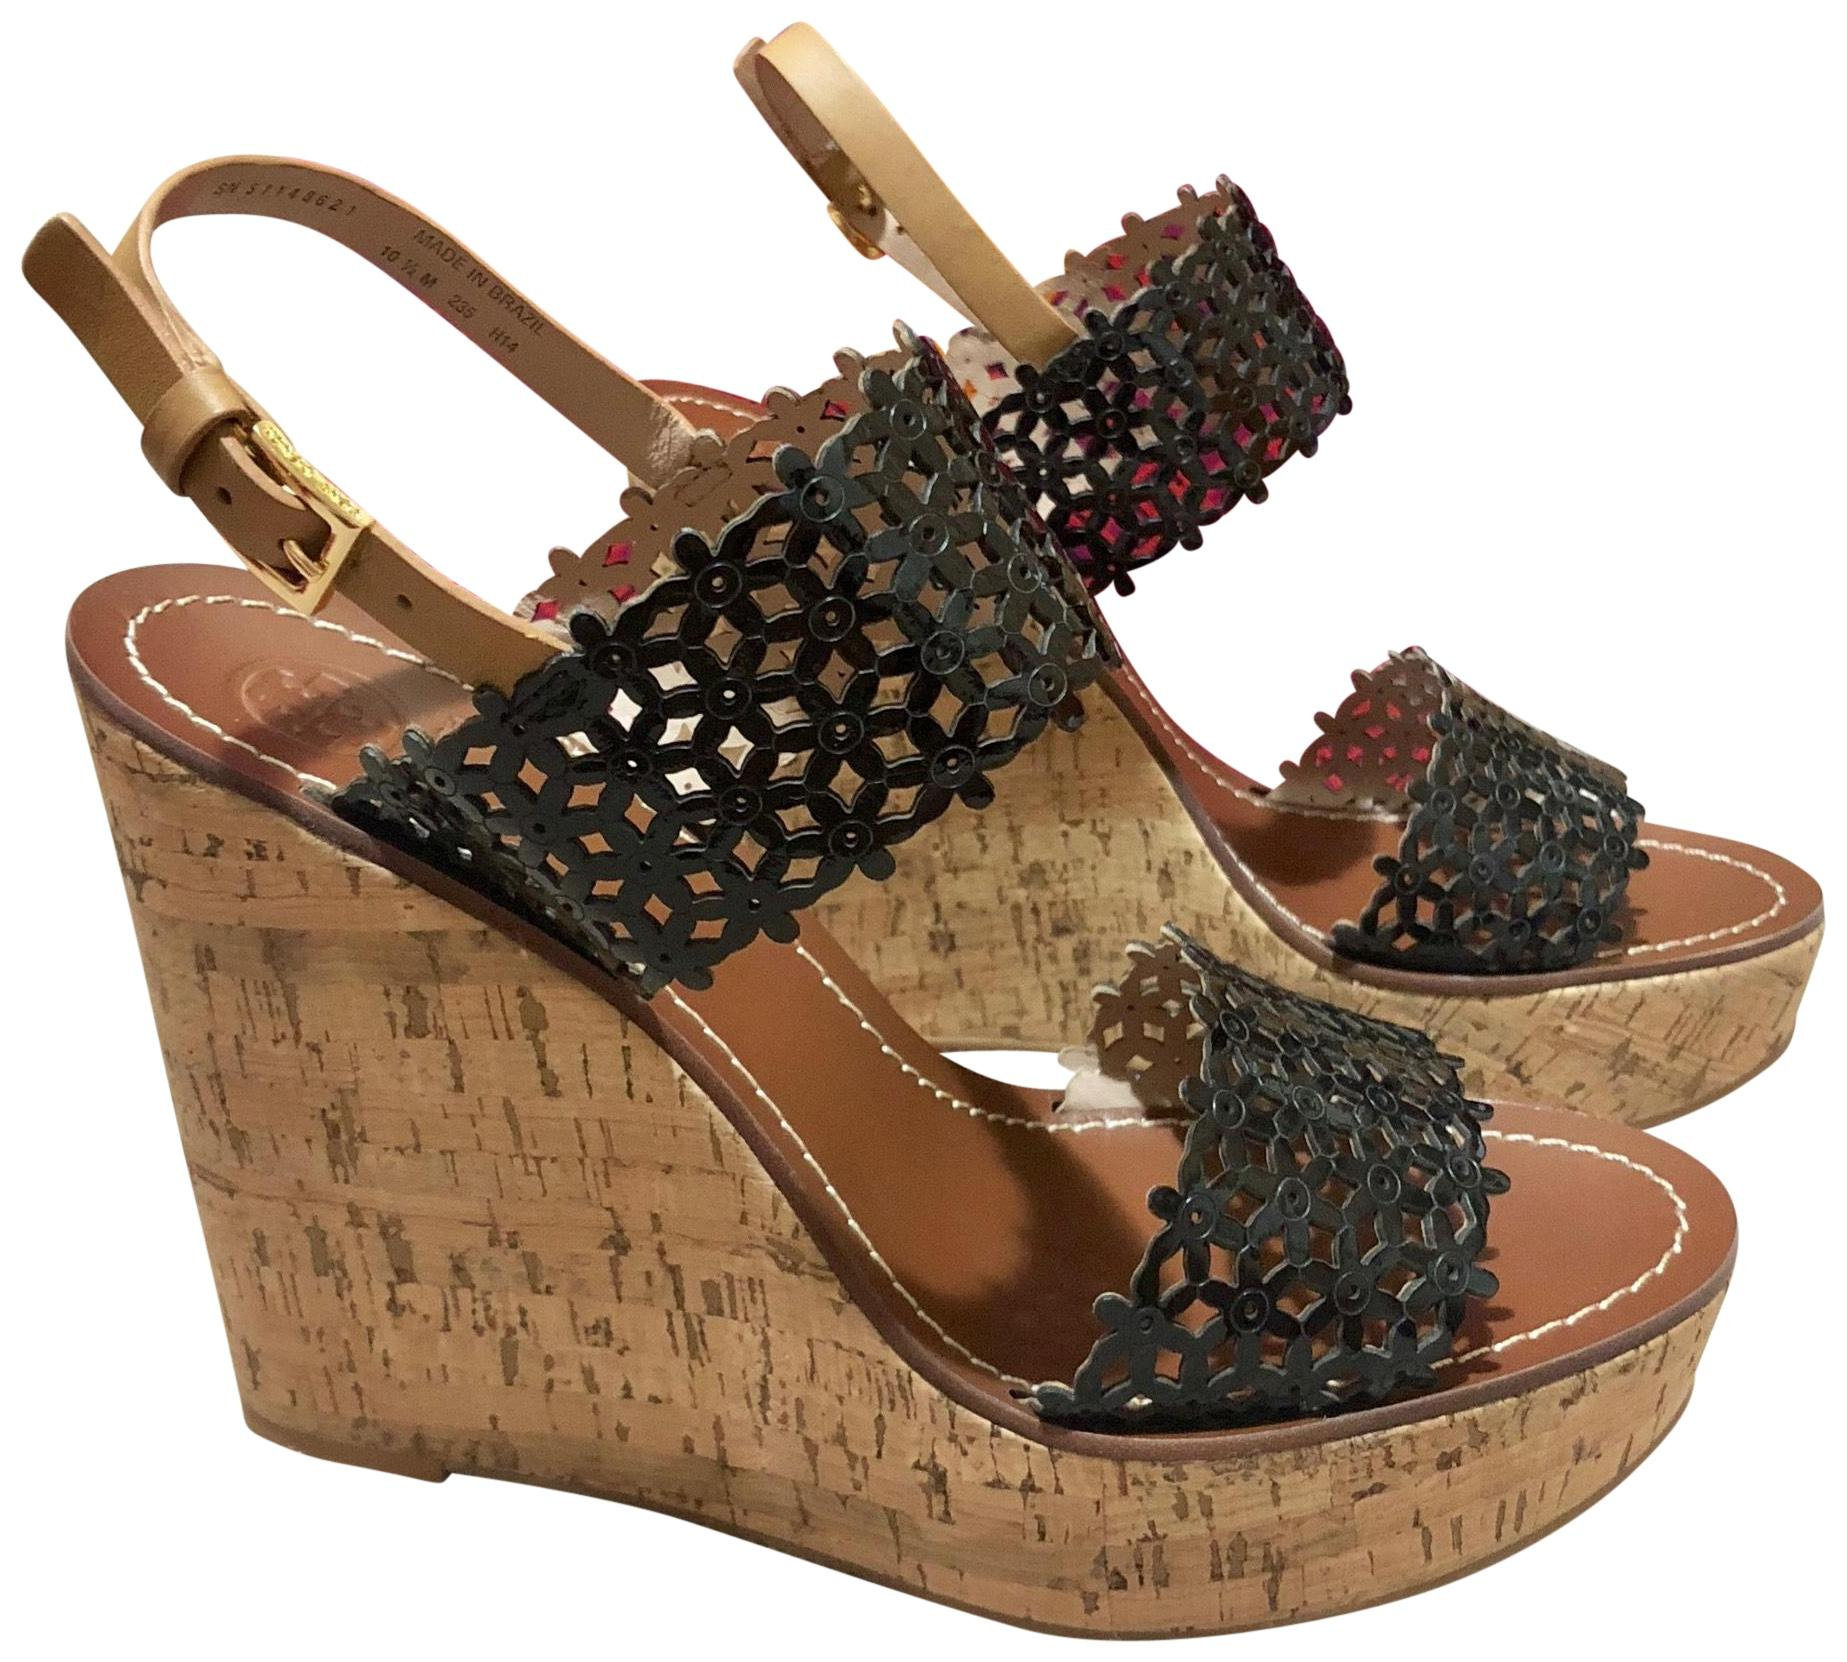 Tory Burch Black Daisy Perforated 125mm Platforms Sandals Cork Leather Tan Wedges Size US 10.5 Regular (M, B)